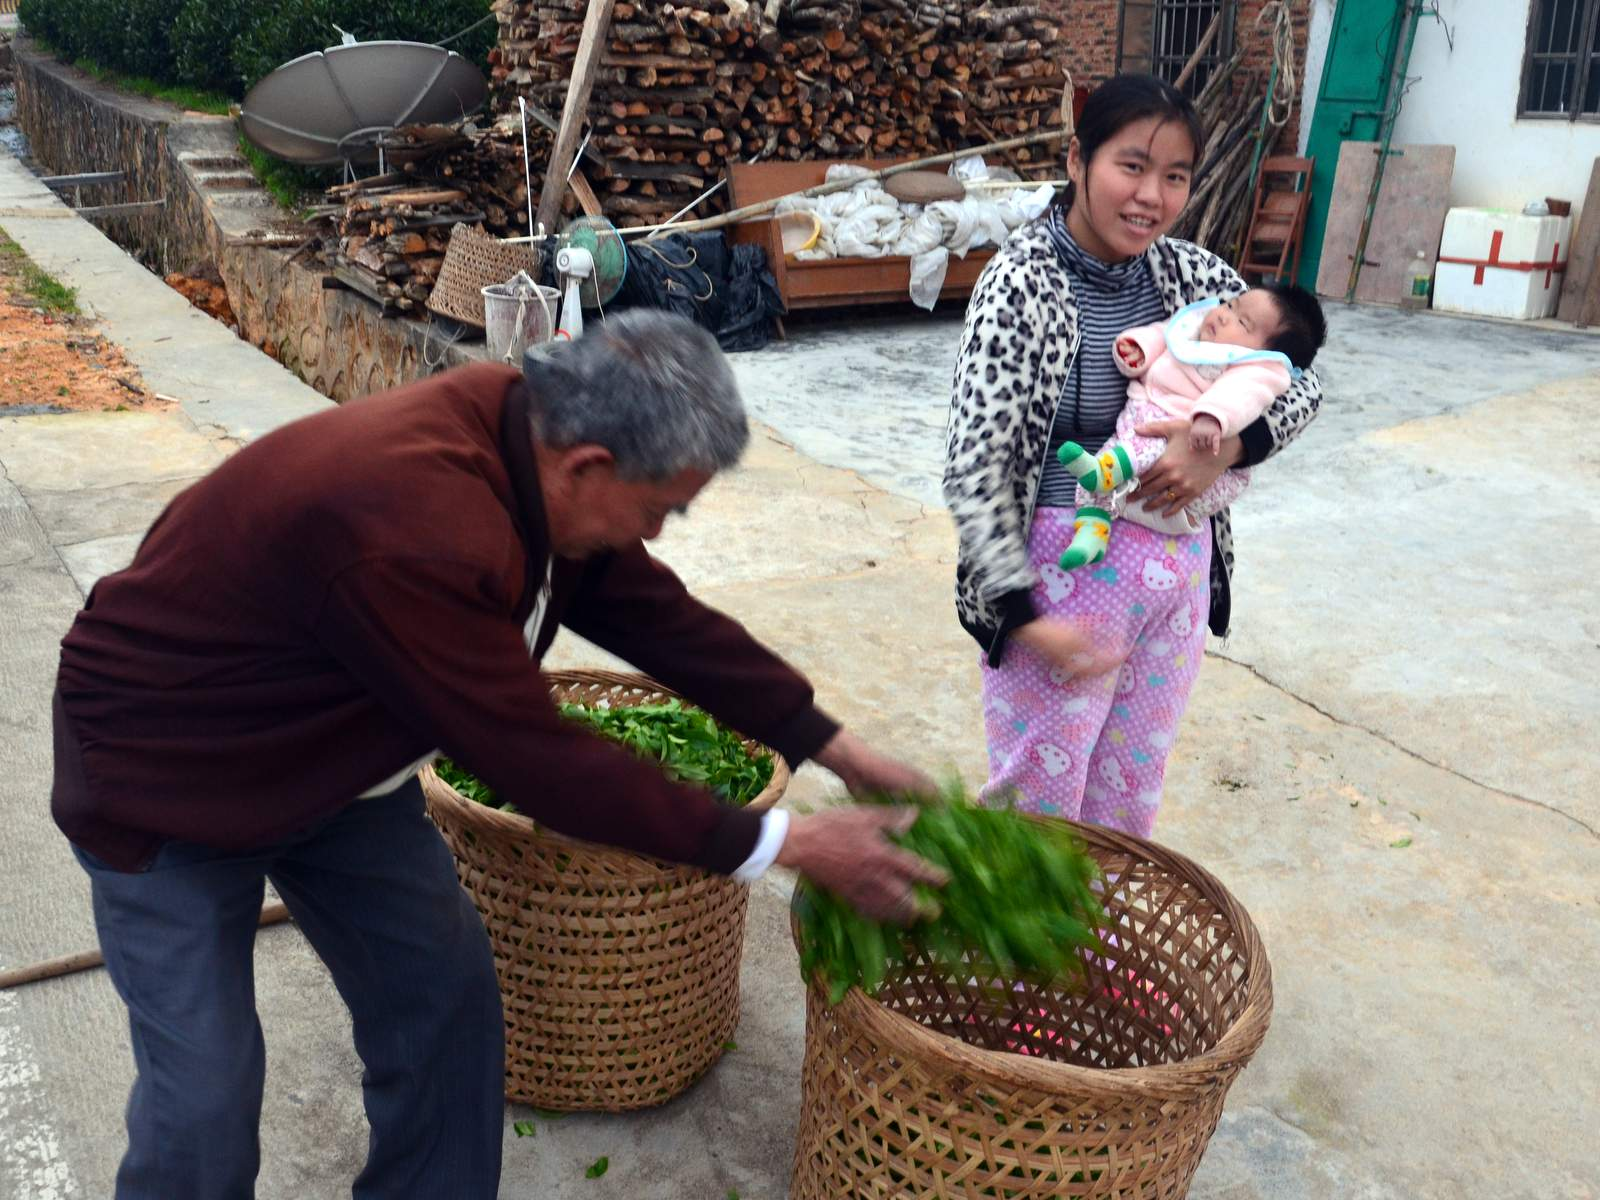 Honey Orchid, Shui Xian Almond, Duck Shit an Chicken case Dancong Oolong ur tea is harvested and processed in a small village between Fenguang town and Wudong Mountain by Cha-Shifu.com (2).JPG